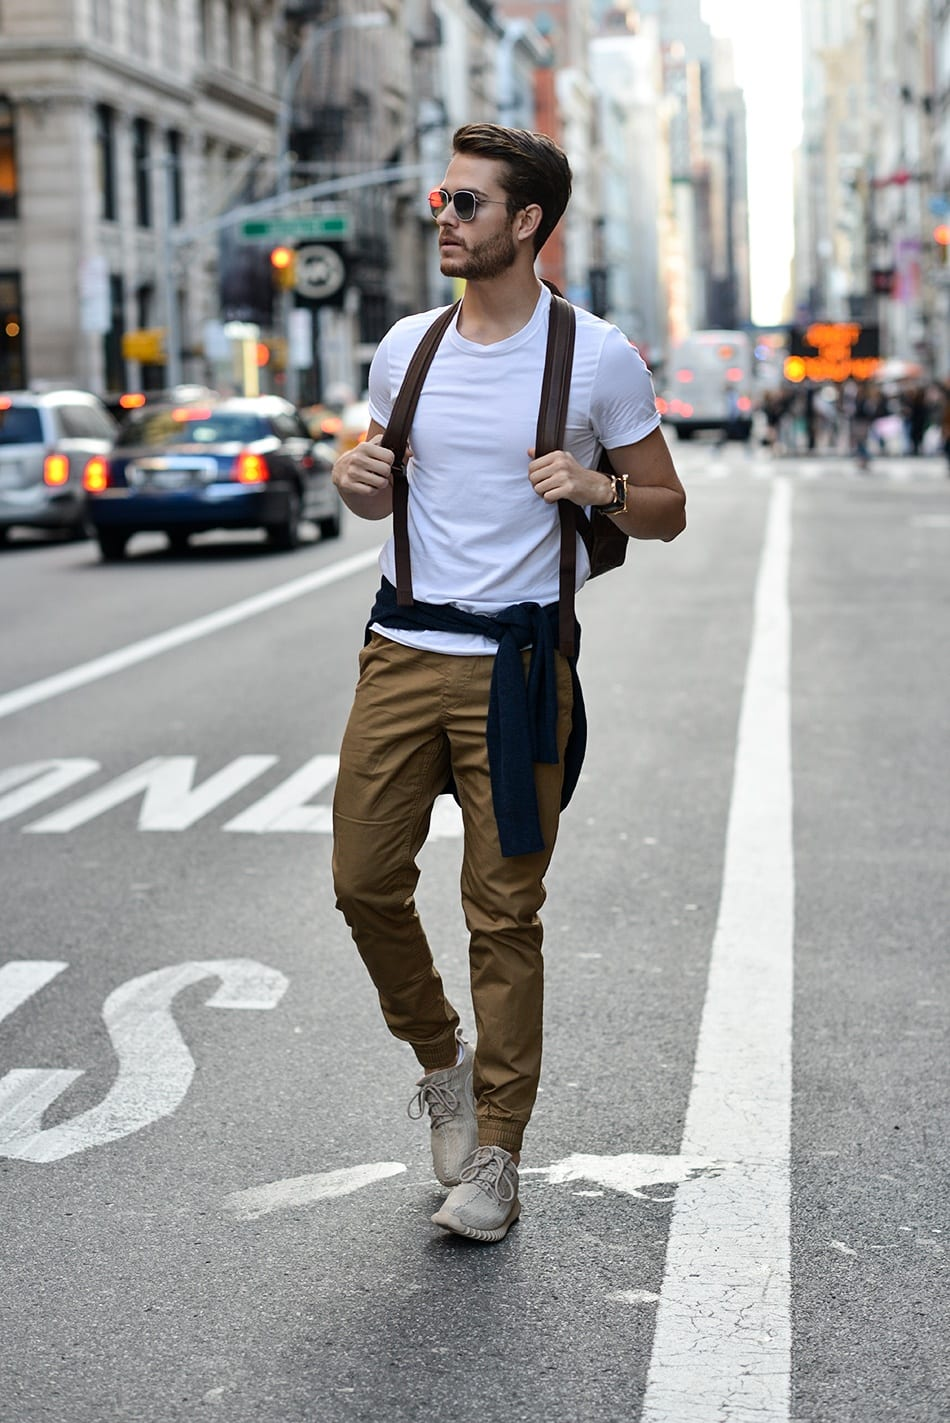 Casual Outfit Ideas For Guys